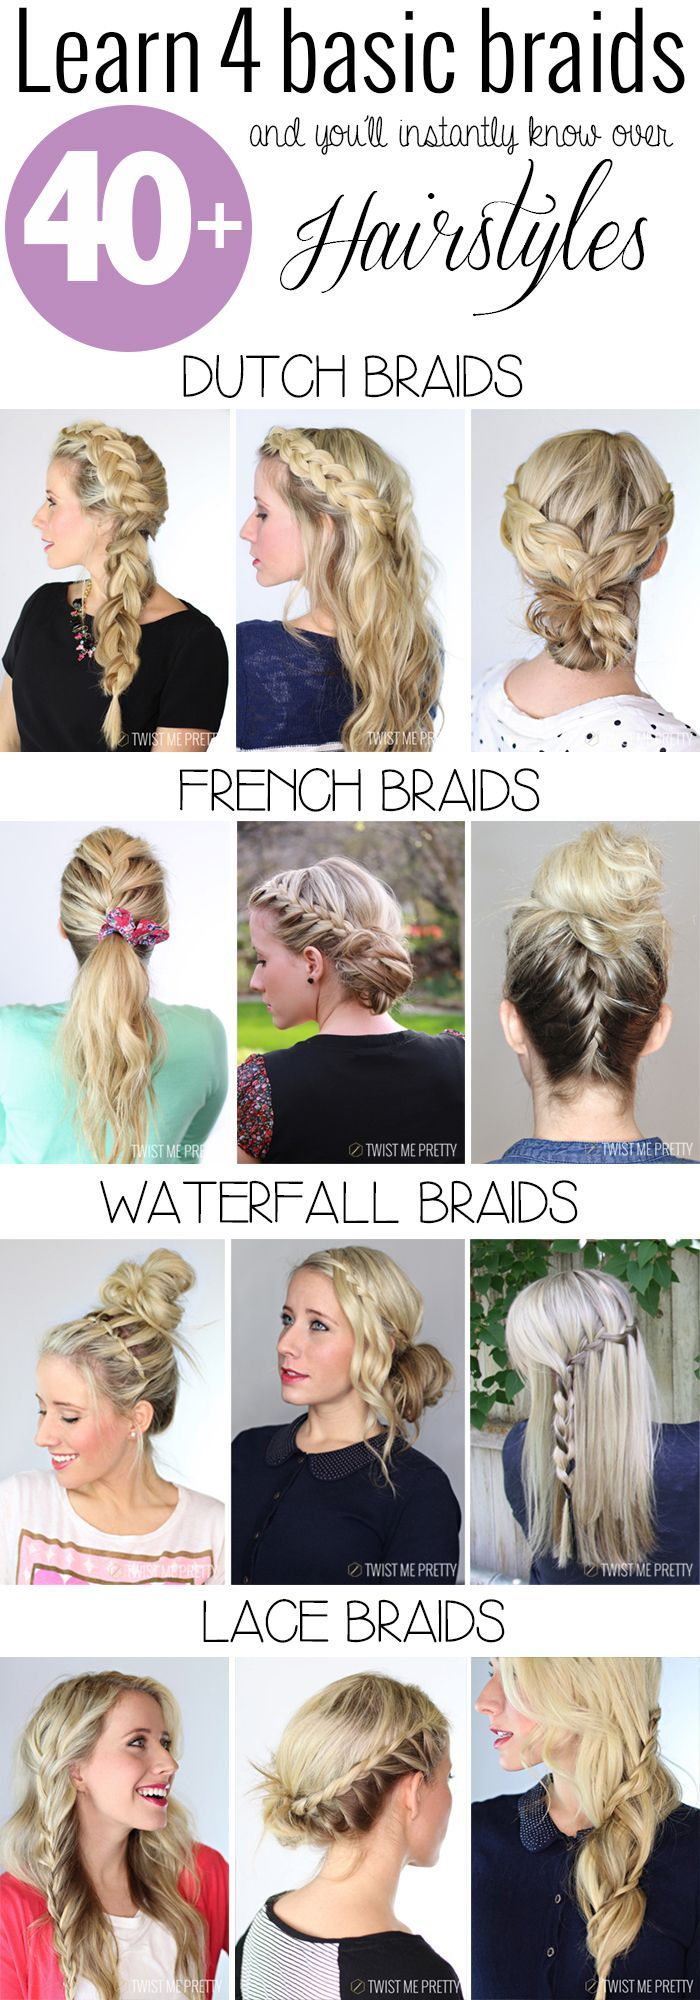 Some beautiful braids that are relatively easy!